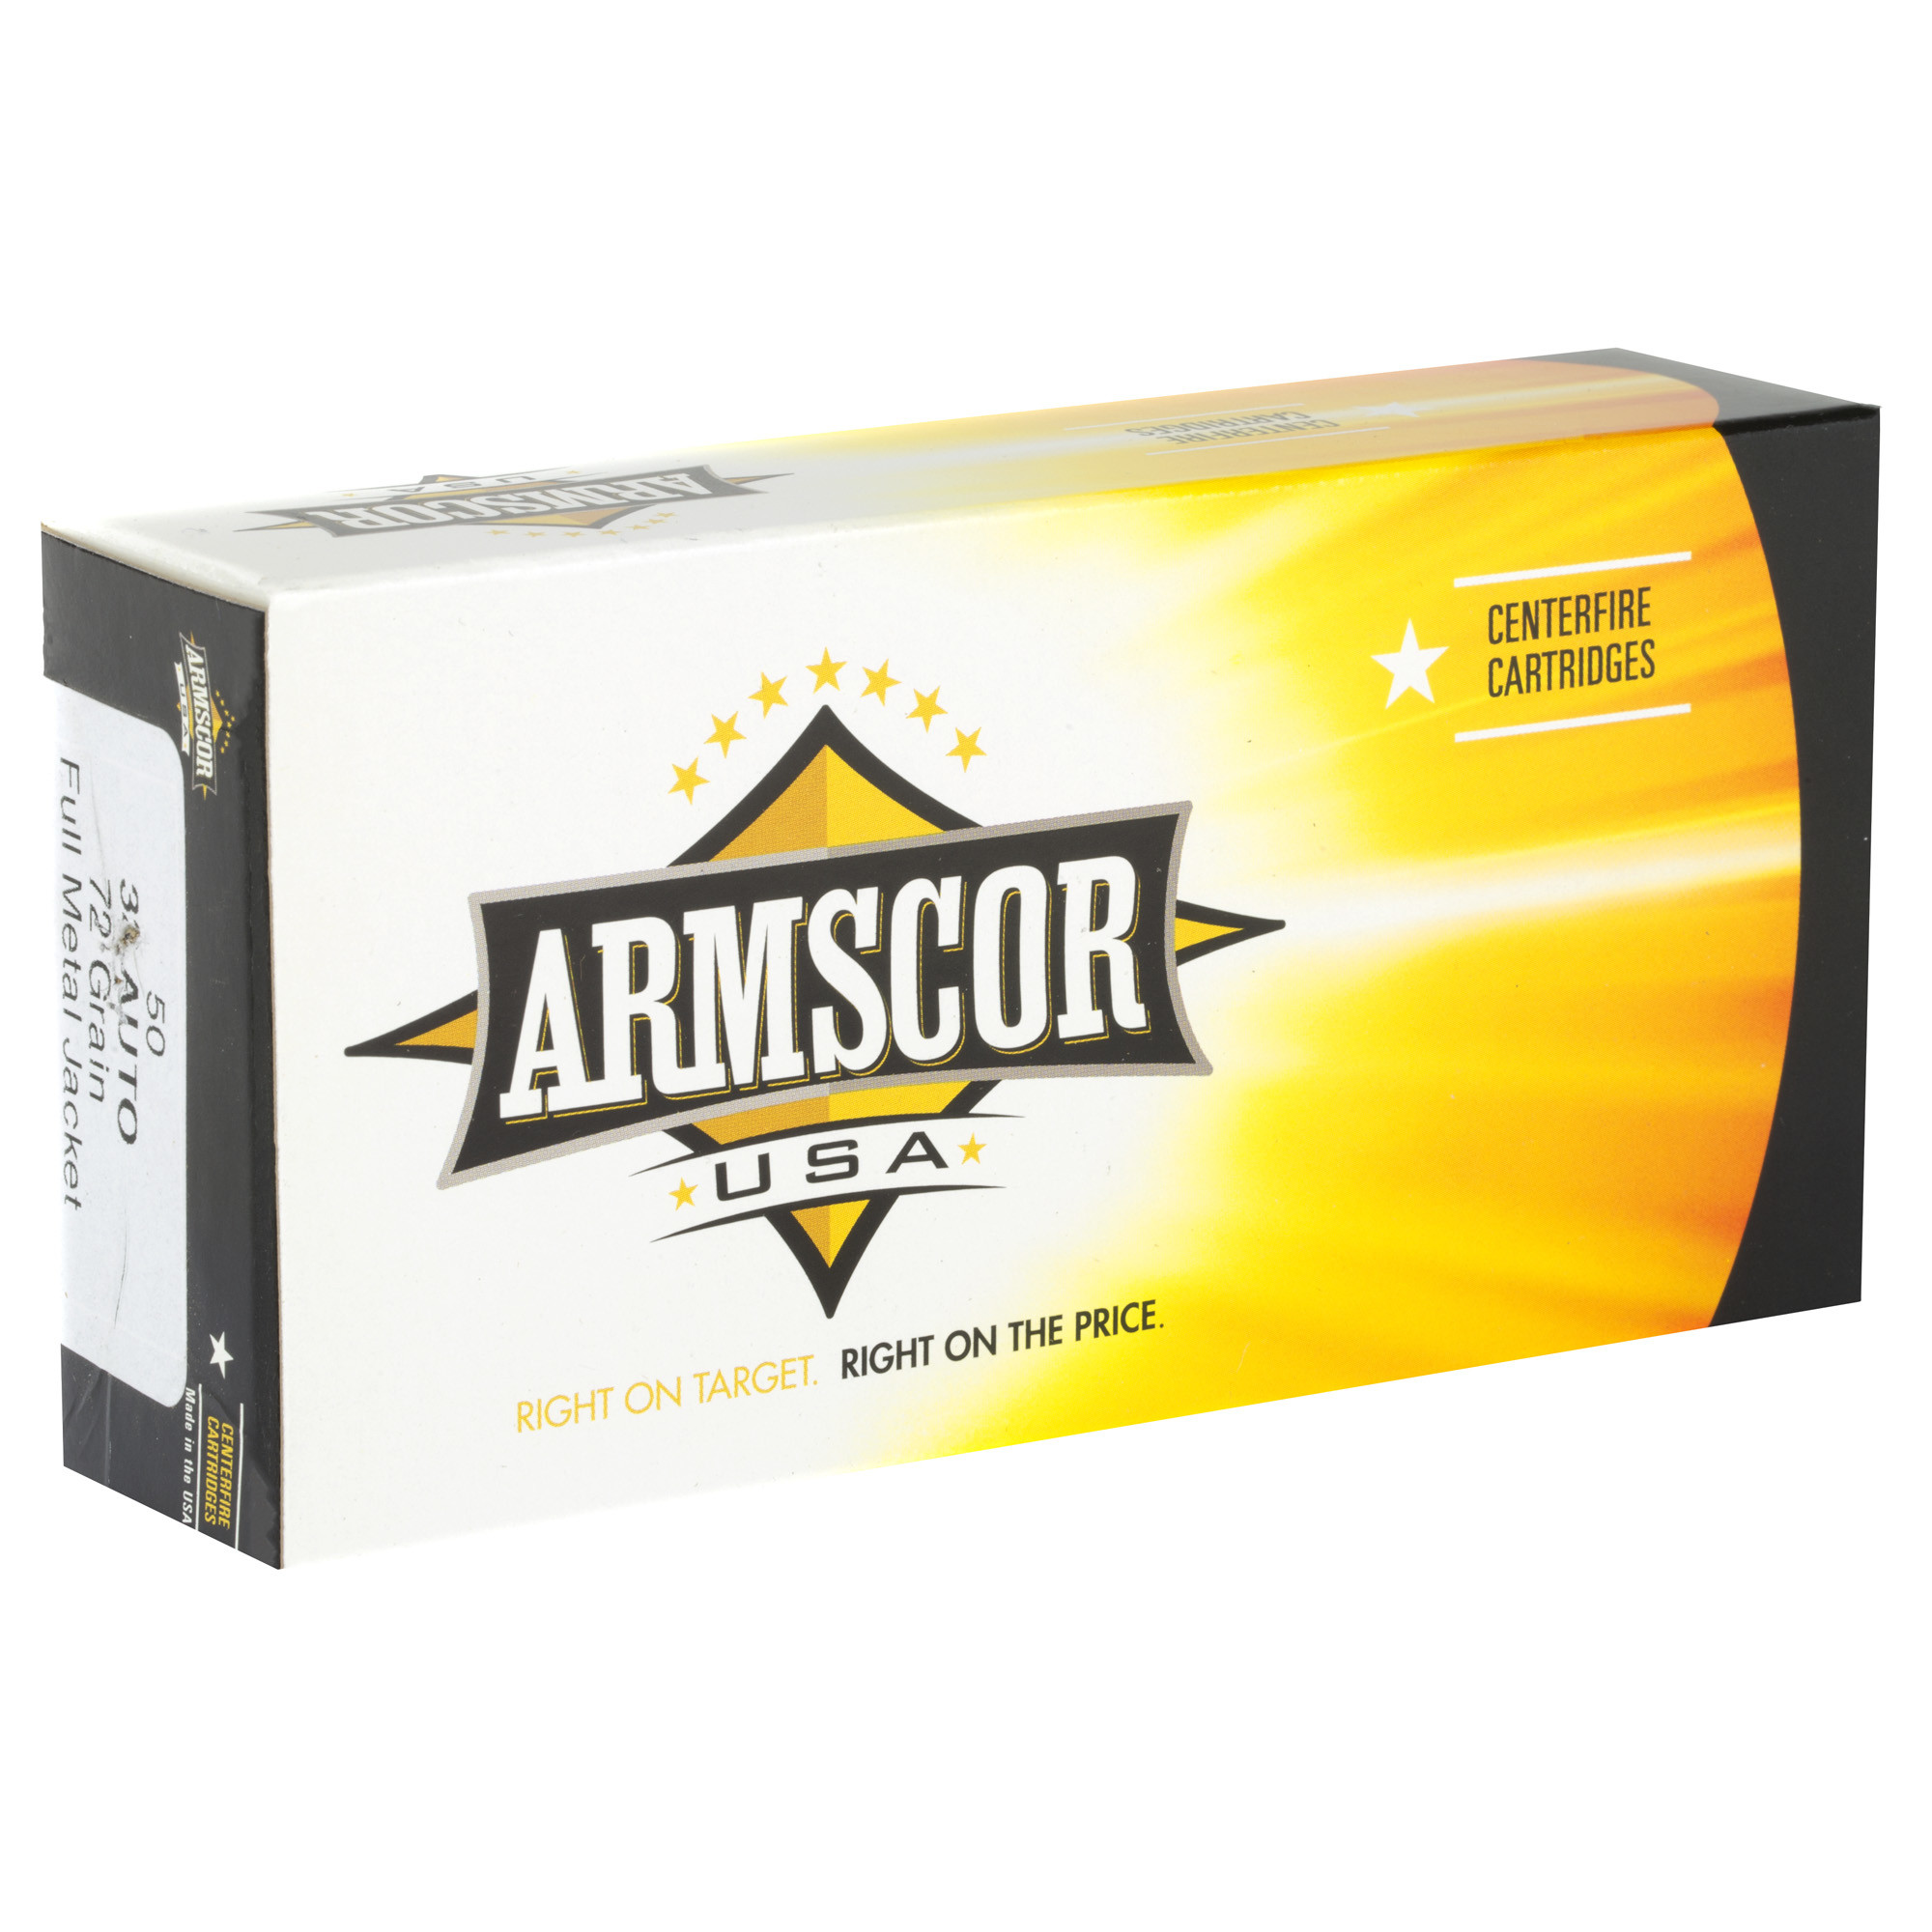 Armscor USA Ammunition 32 Auto (ACP) 71 Grain Full Metal Jacket Per 50